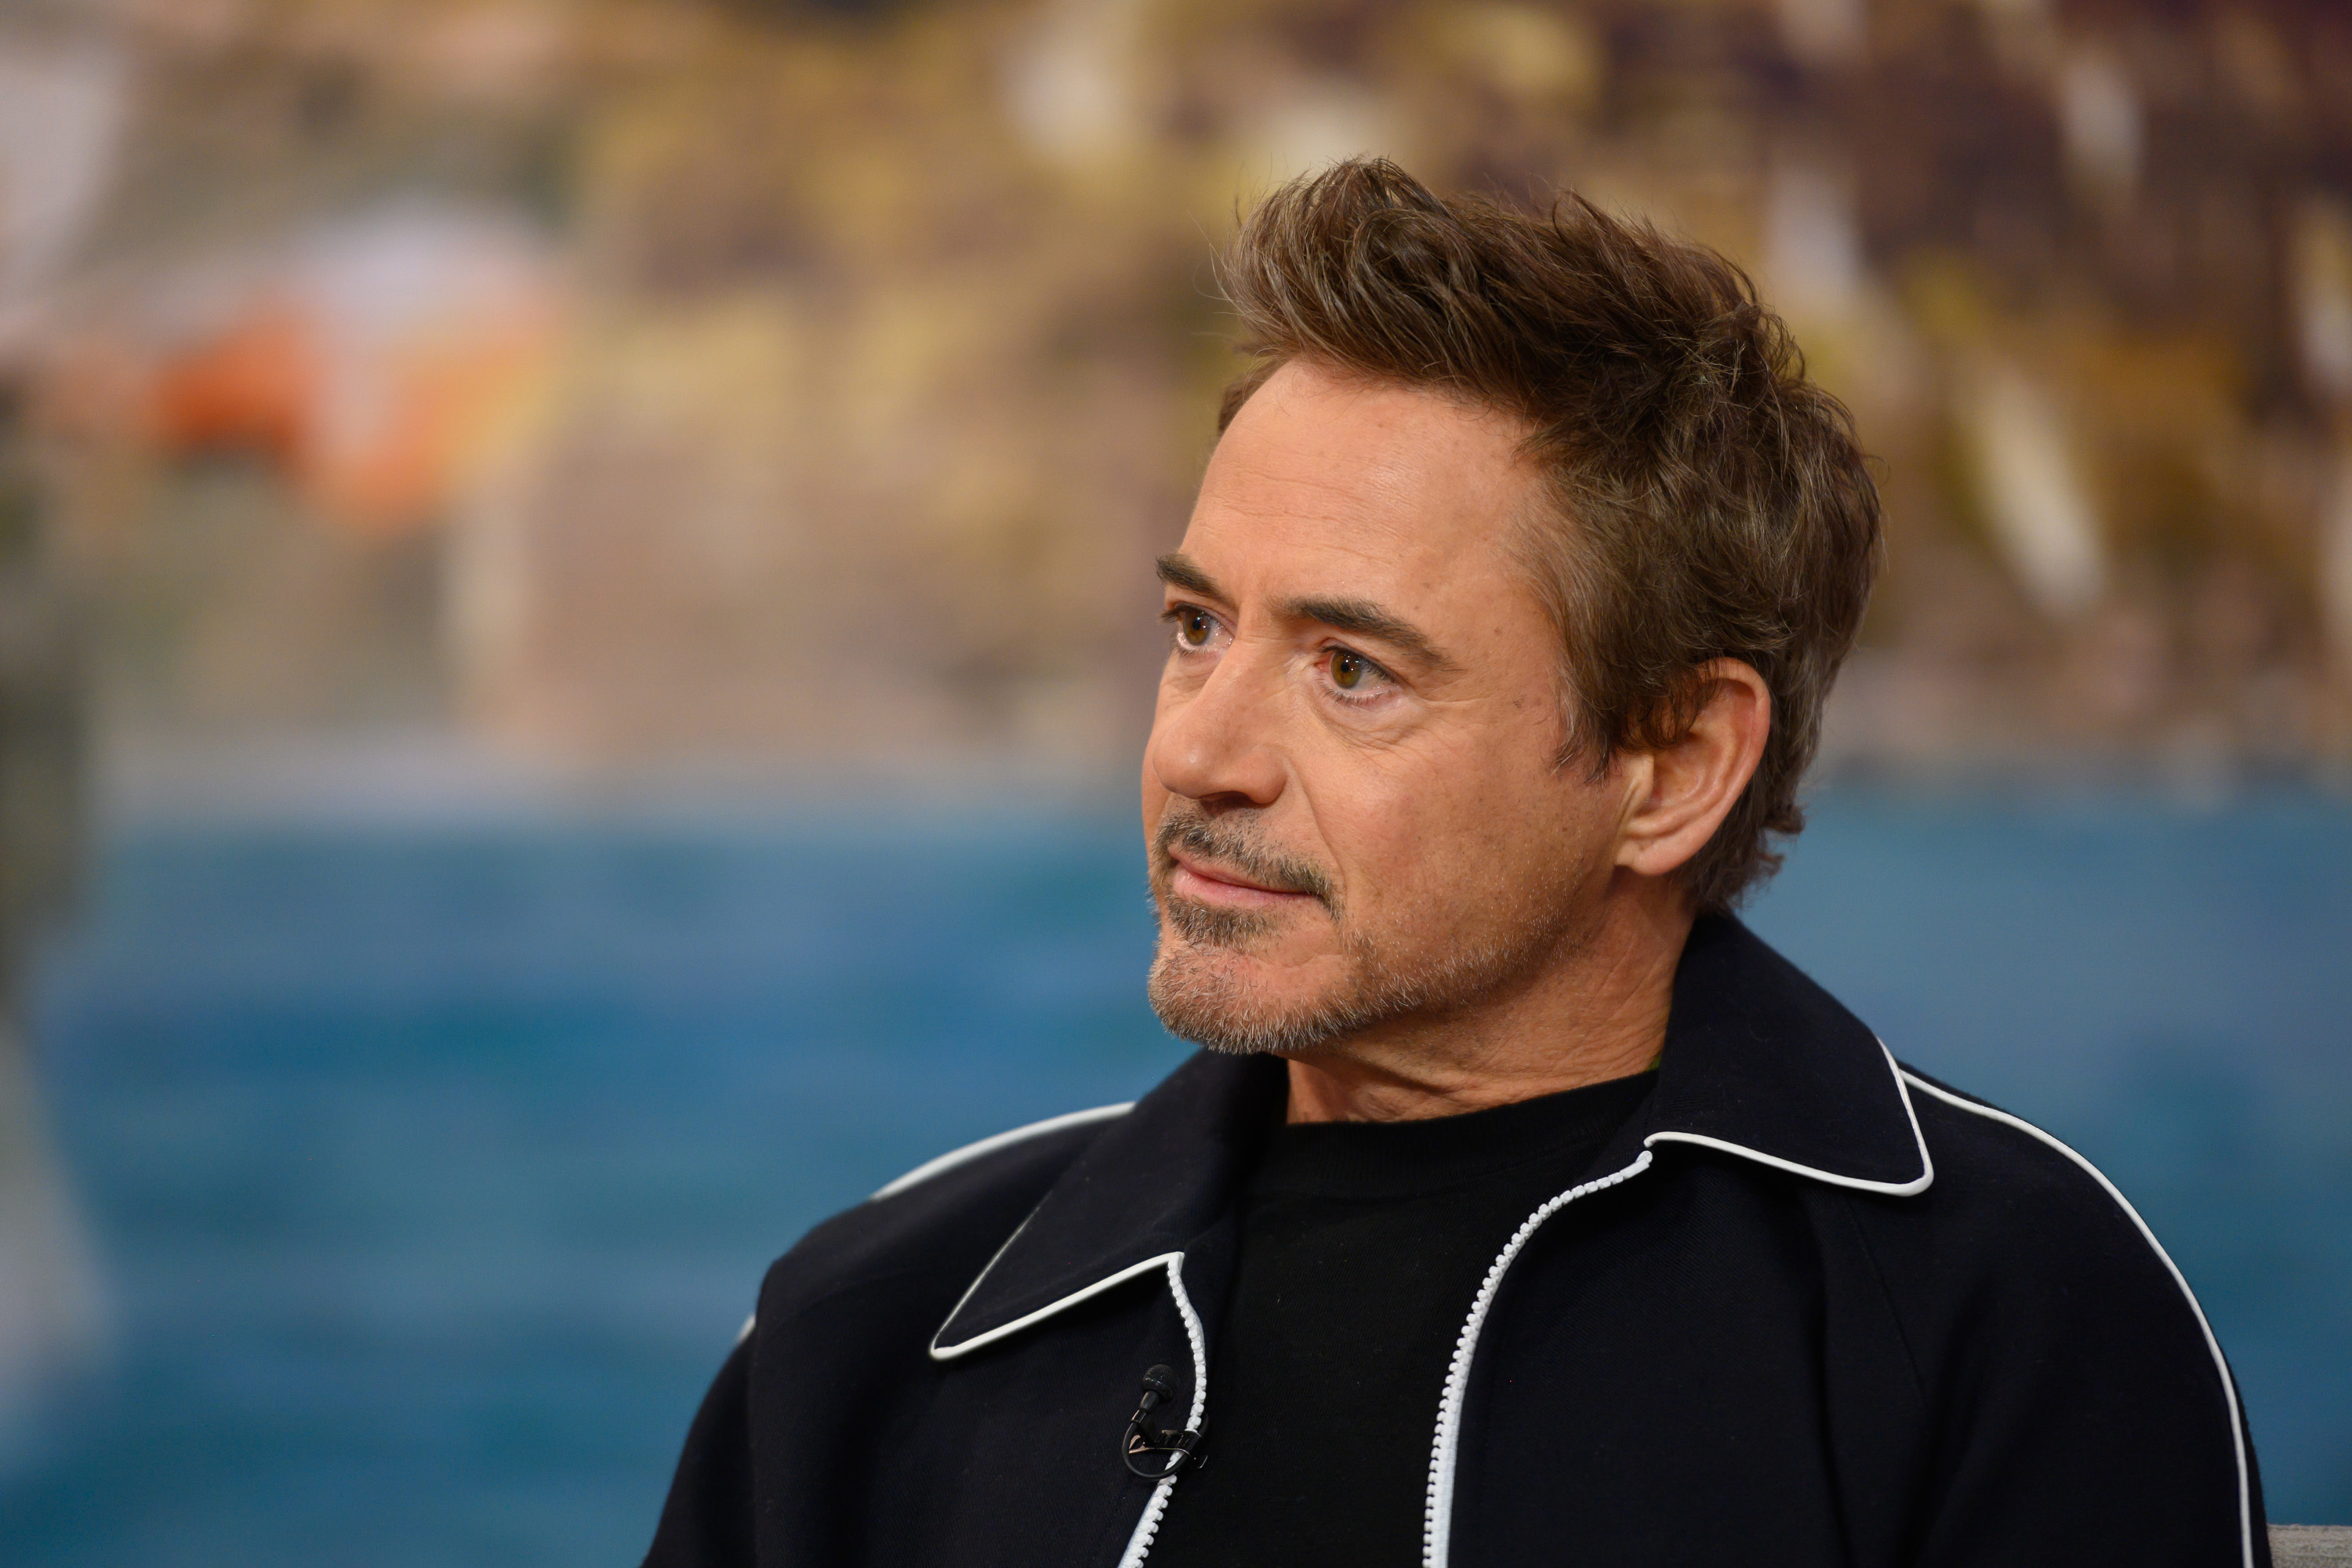 Robert Downey Jr Launches Venture Capital Funds To Focus On Esg Fortune